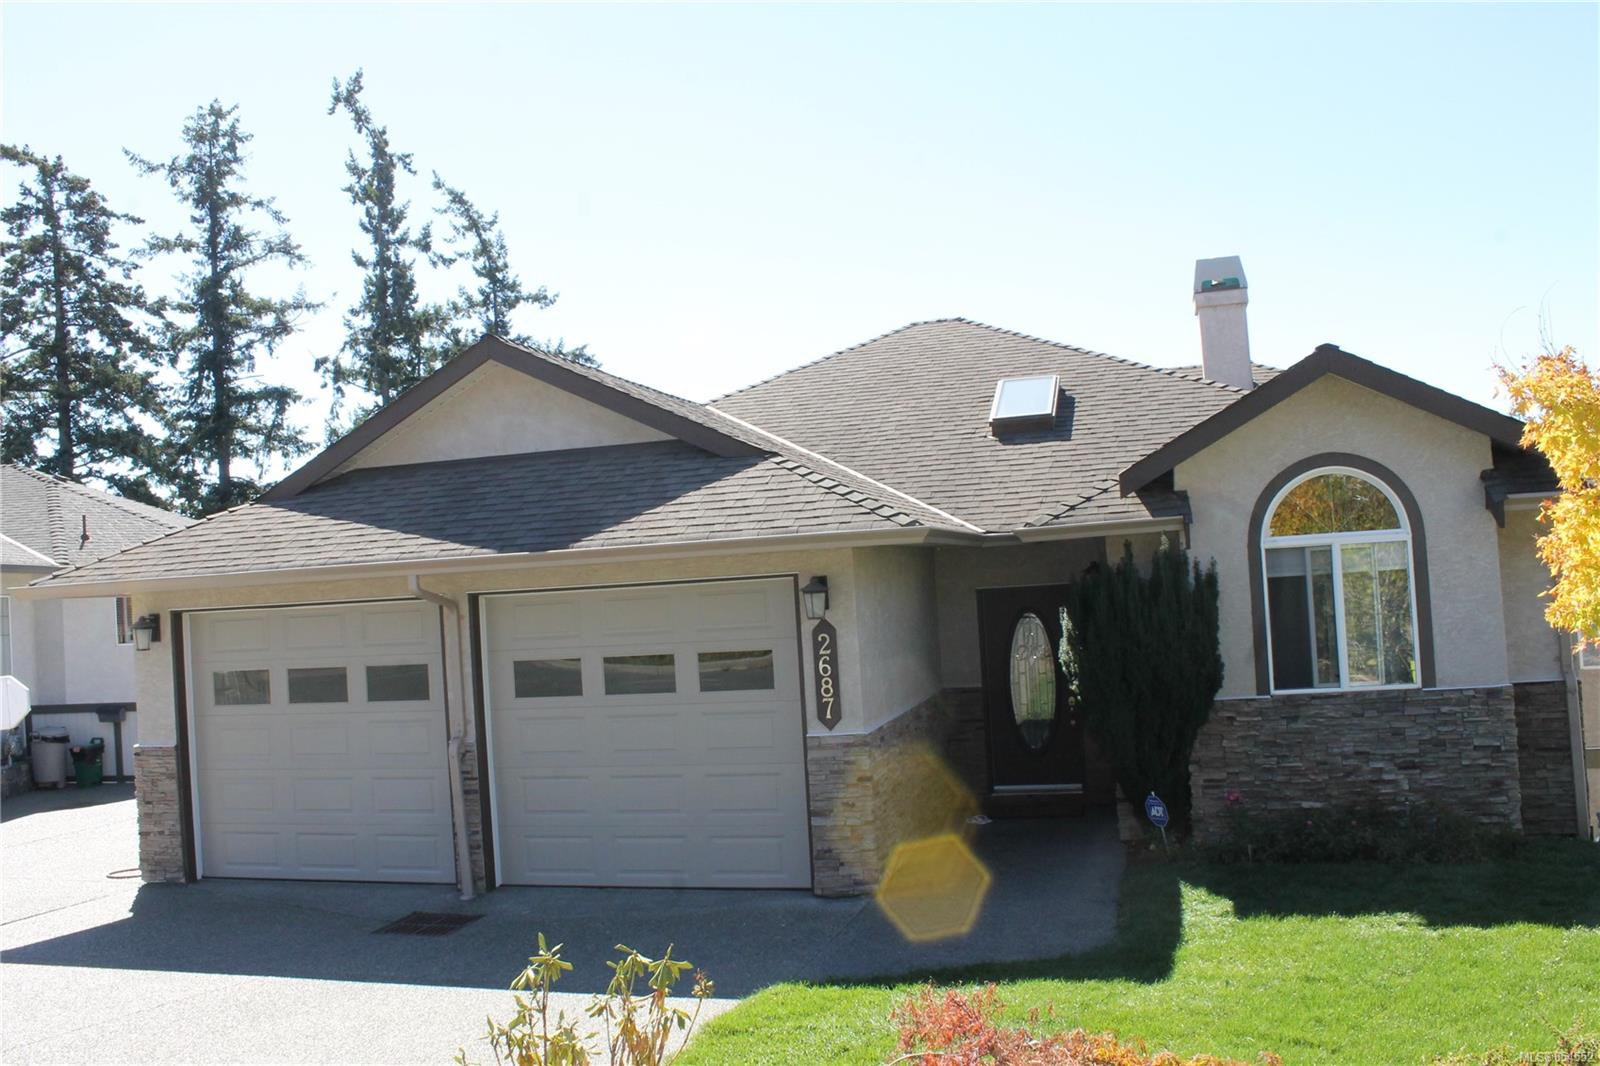 Main Photo: 2687 Nugget Terr in : La Atkins Single Family Detached for sale (Langford)  : MLS®# 854552